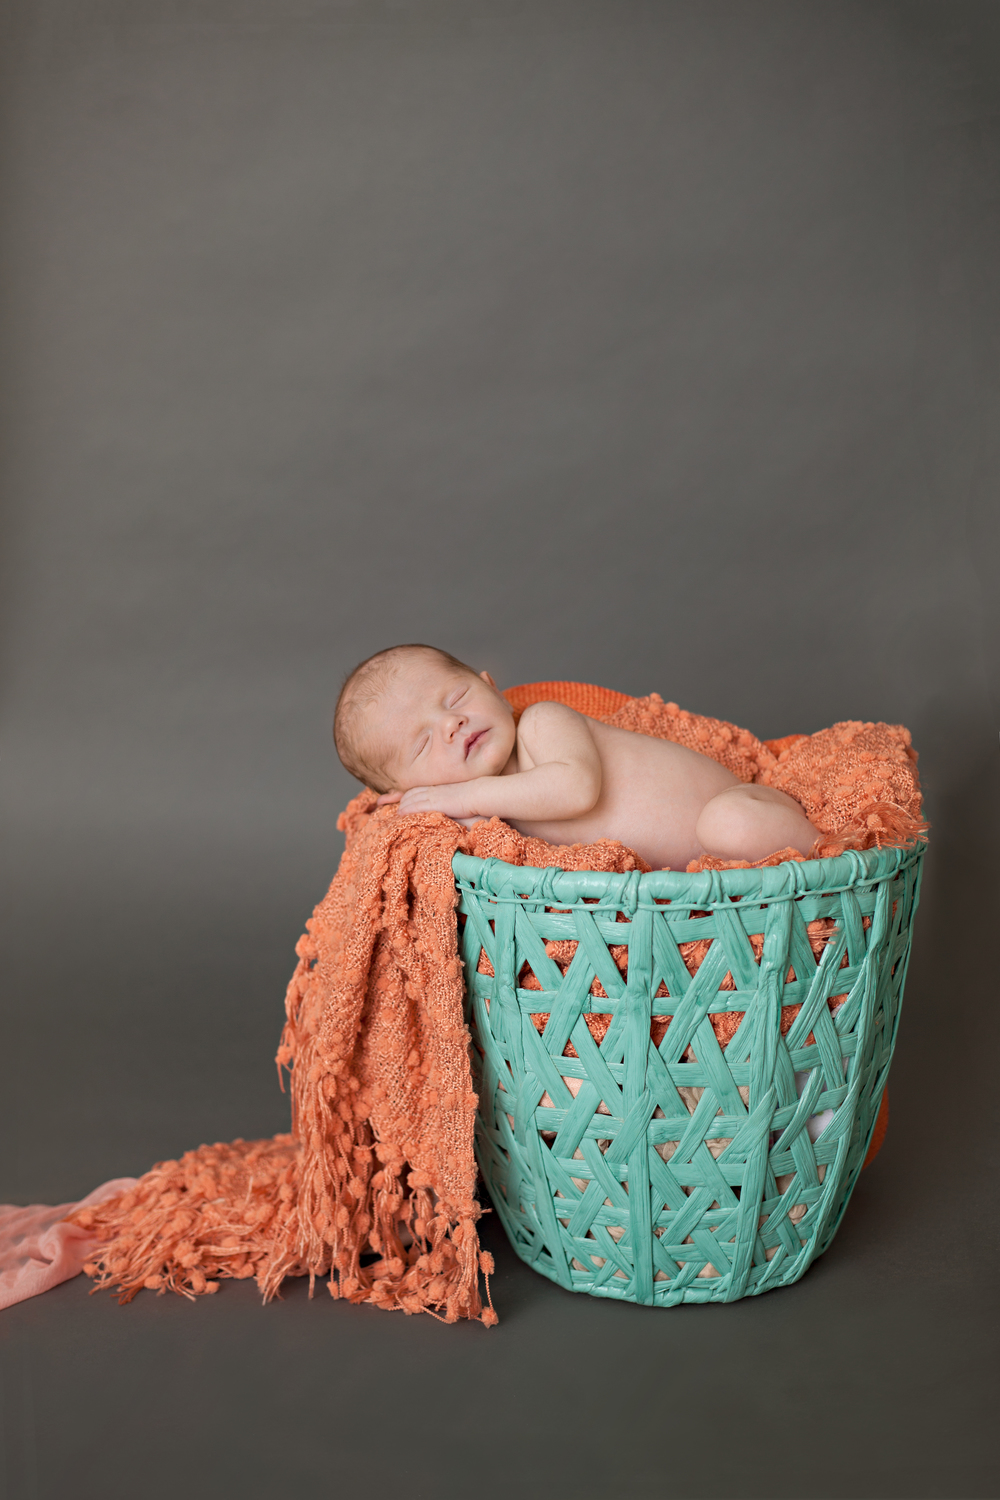 Worthington Photographer, newborn photography session, teal basket